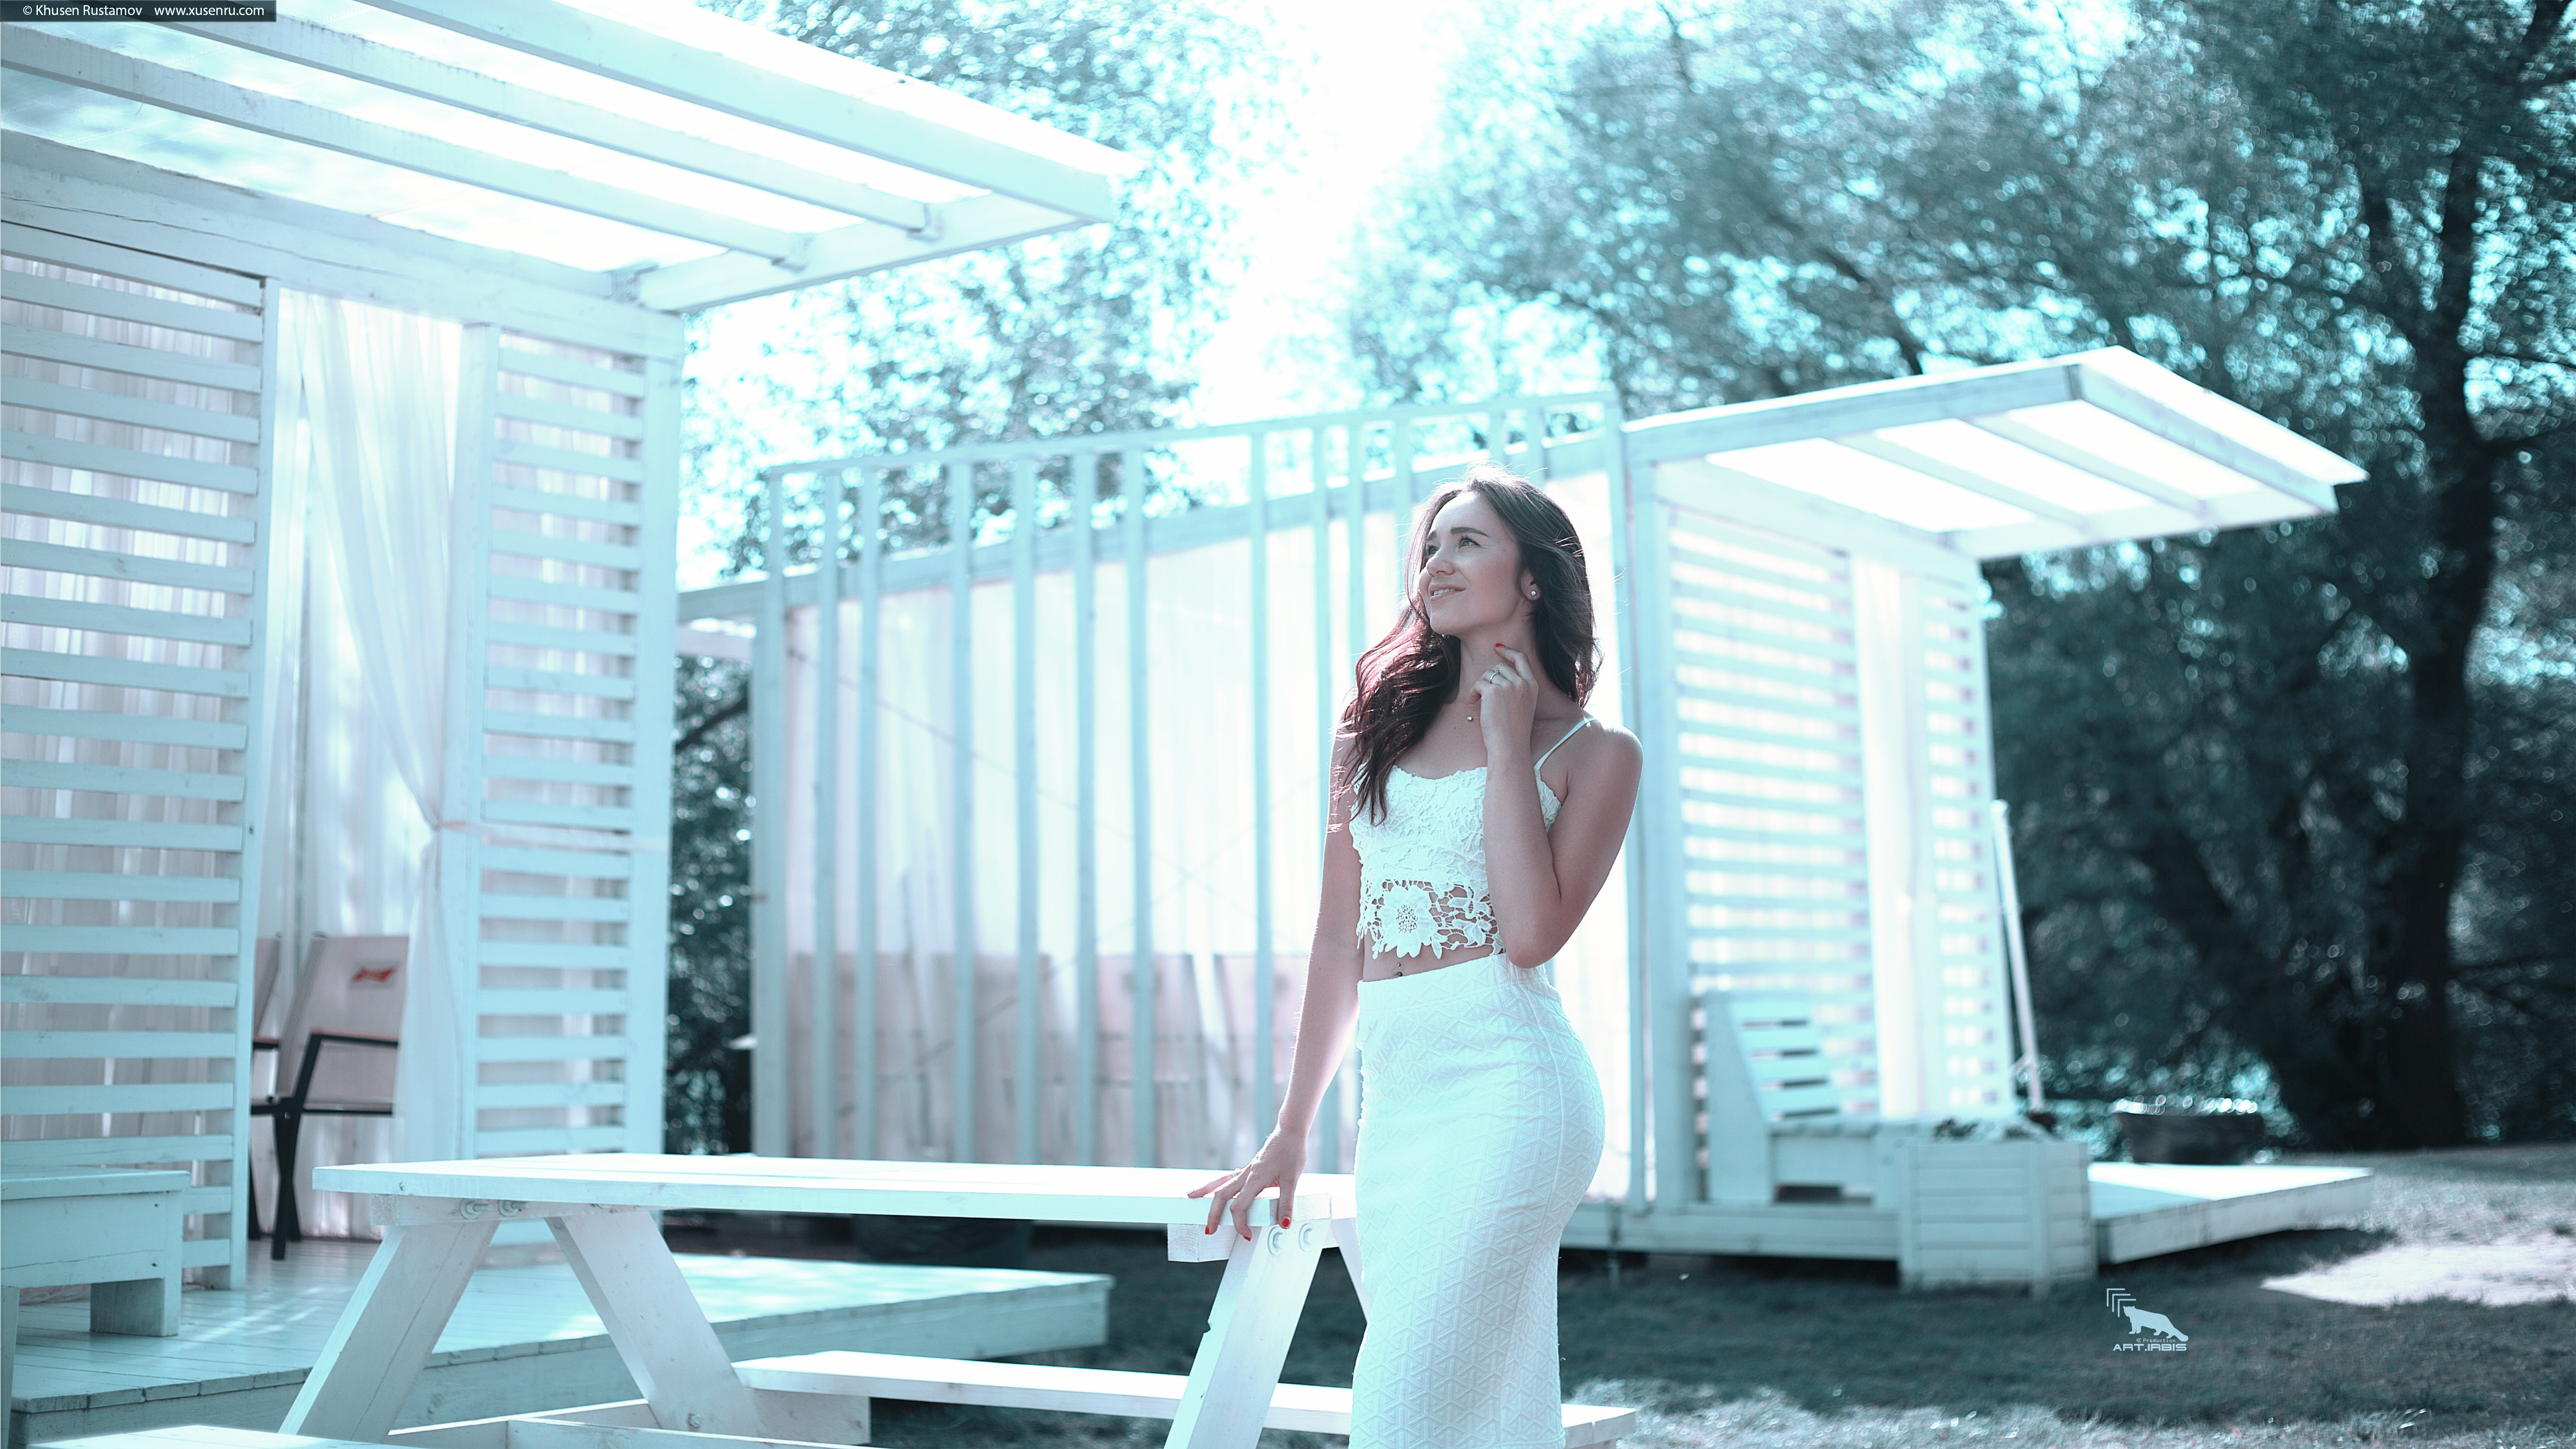 Woman in White Dress Standing Beside White Wooden Picnic Table